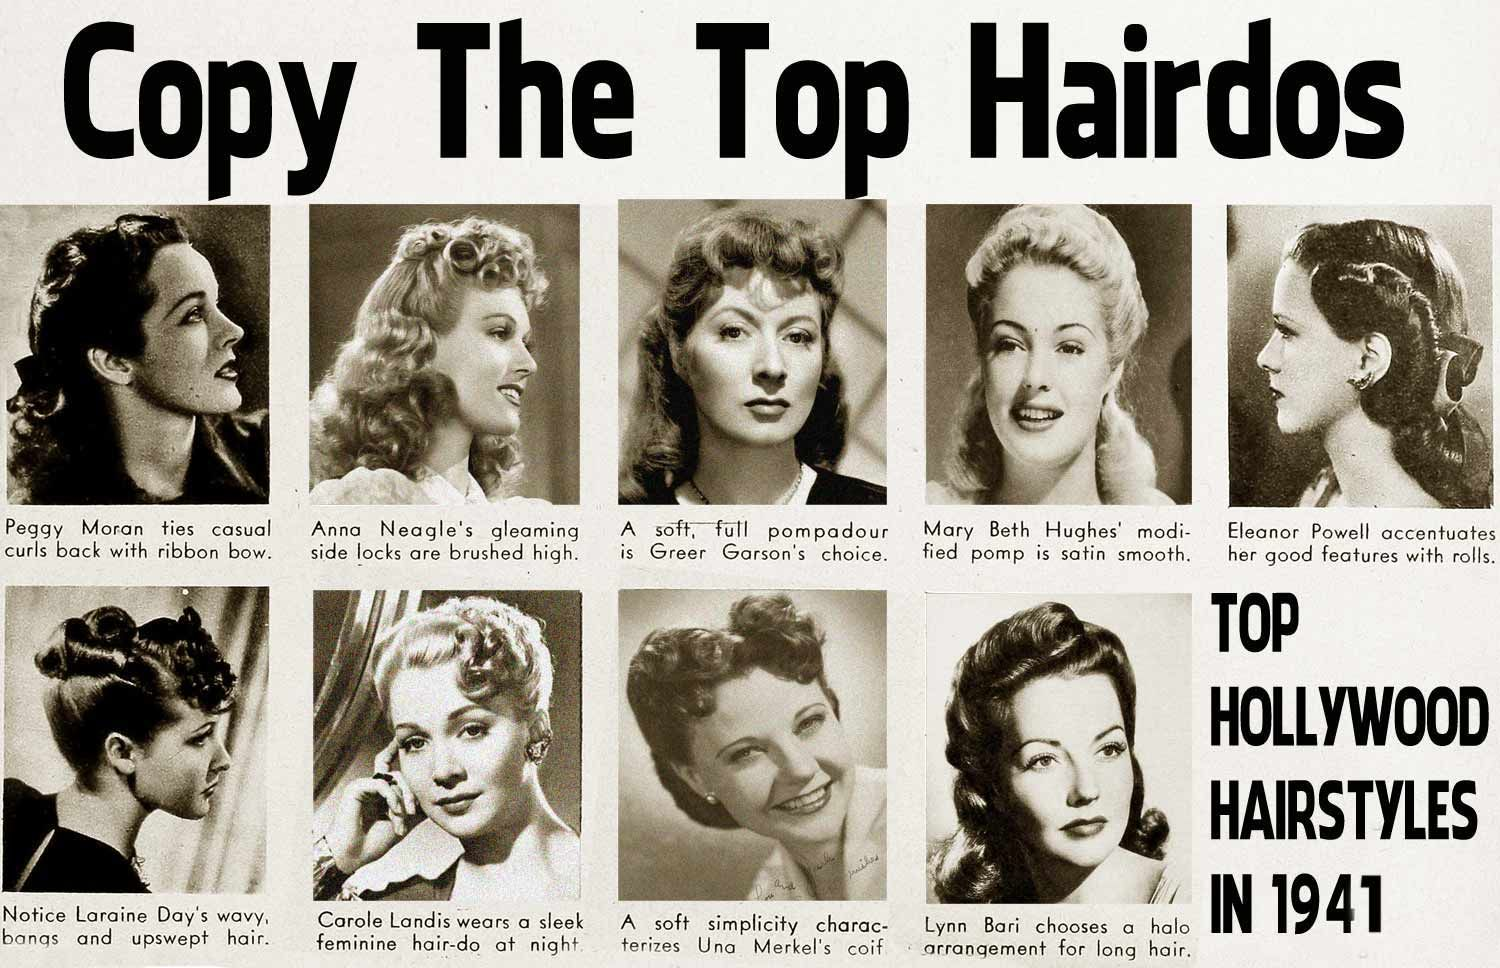 1940s hairstyle - copy the top hairdos of 1941 | hair